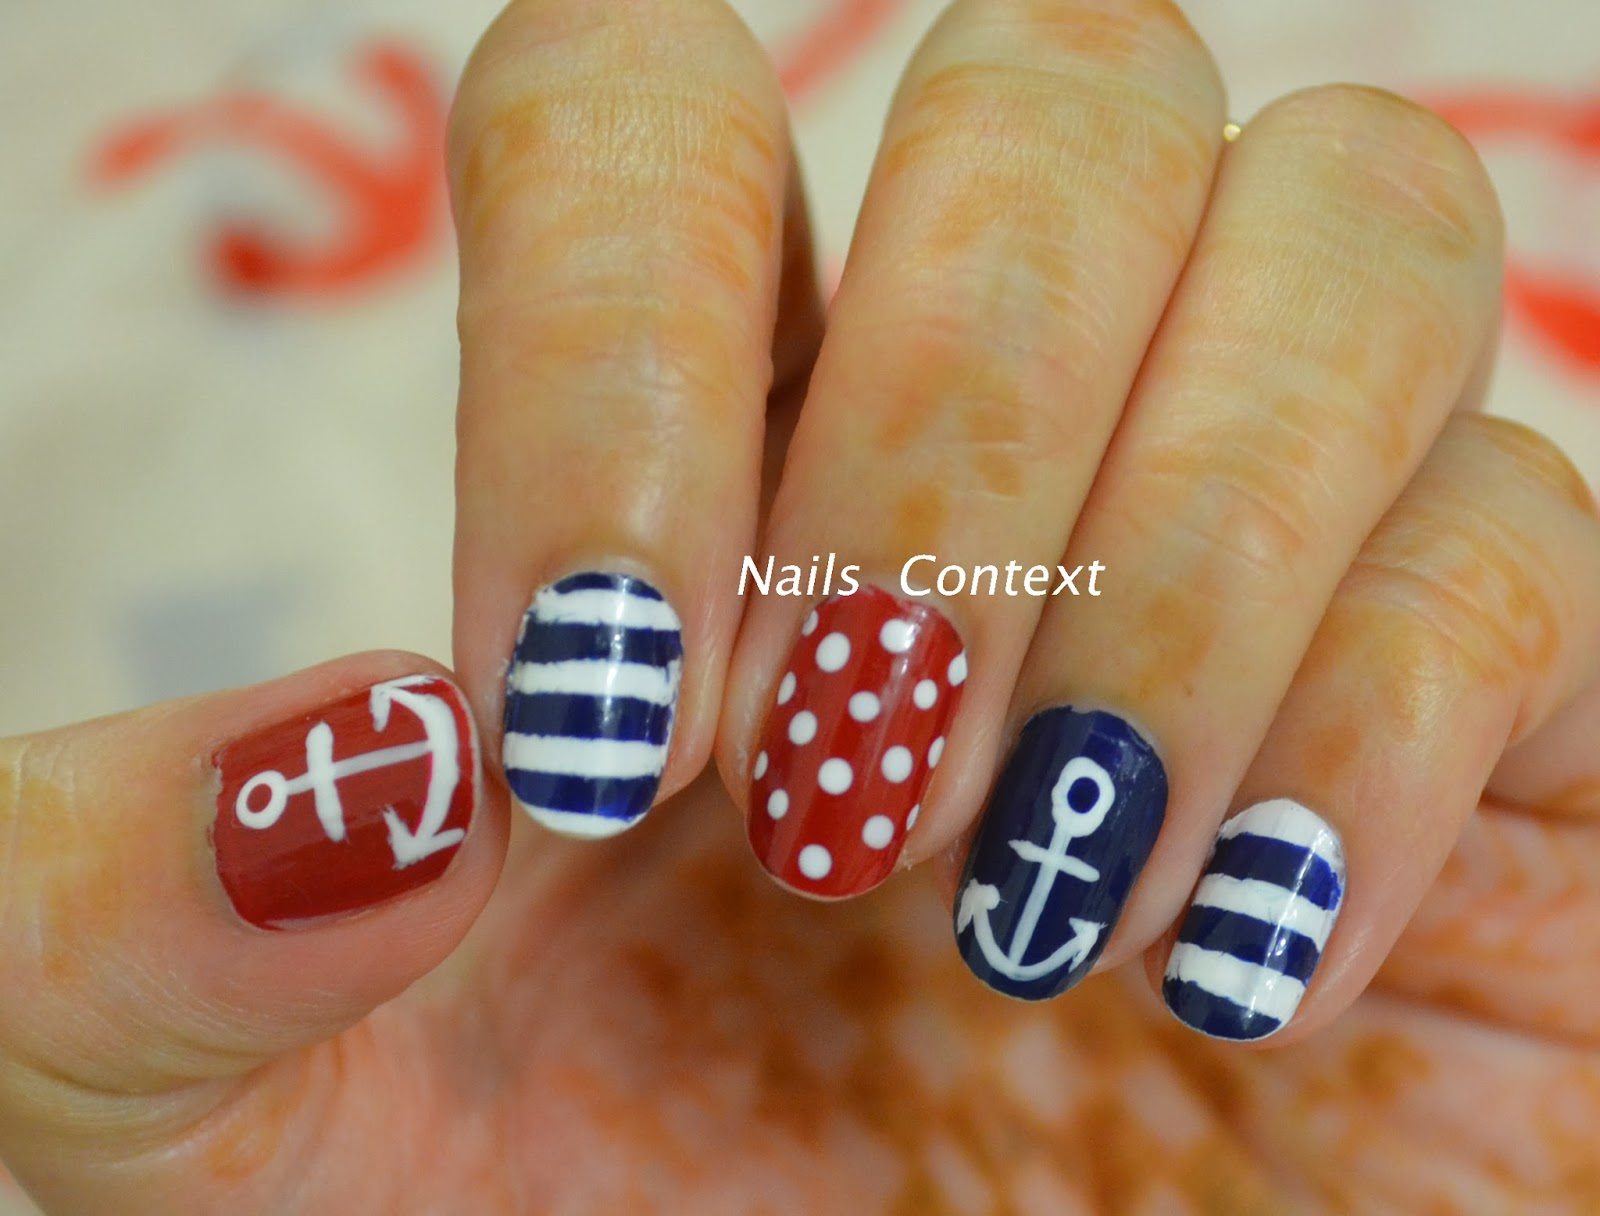 Nails context sailor nails this halloween i decided to dress as a sailor and so instead of doing typical halloween nails i painted my nails suited for a sailor prinsesfo Image collections